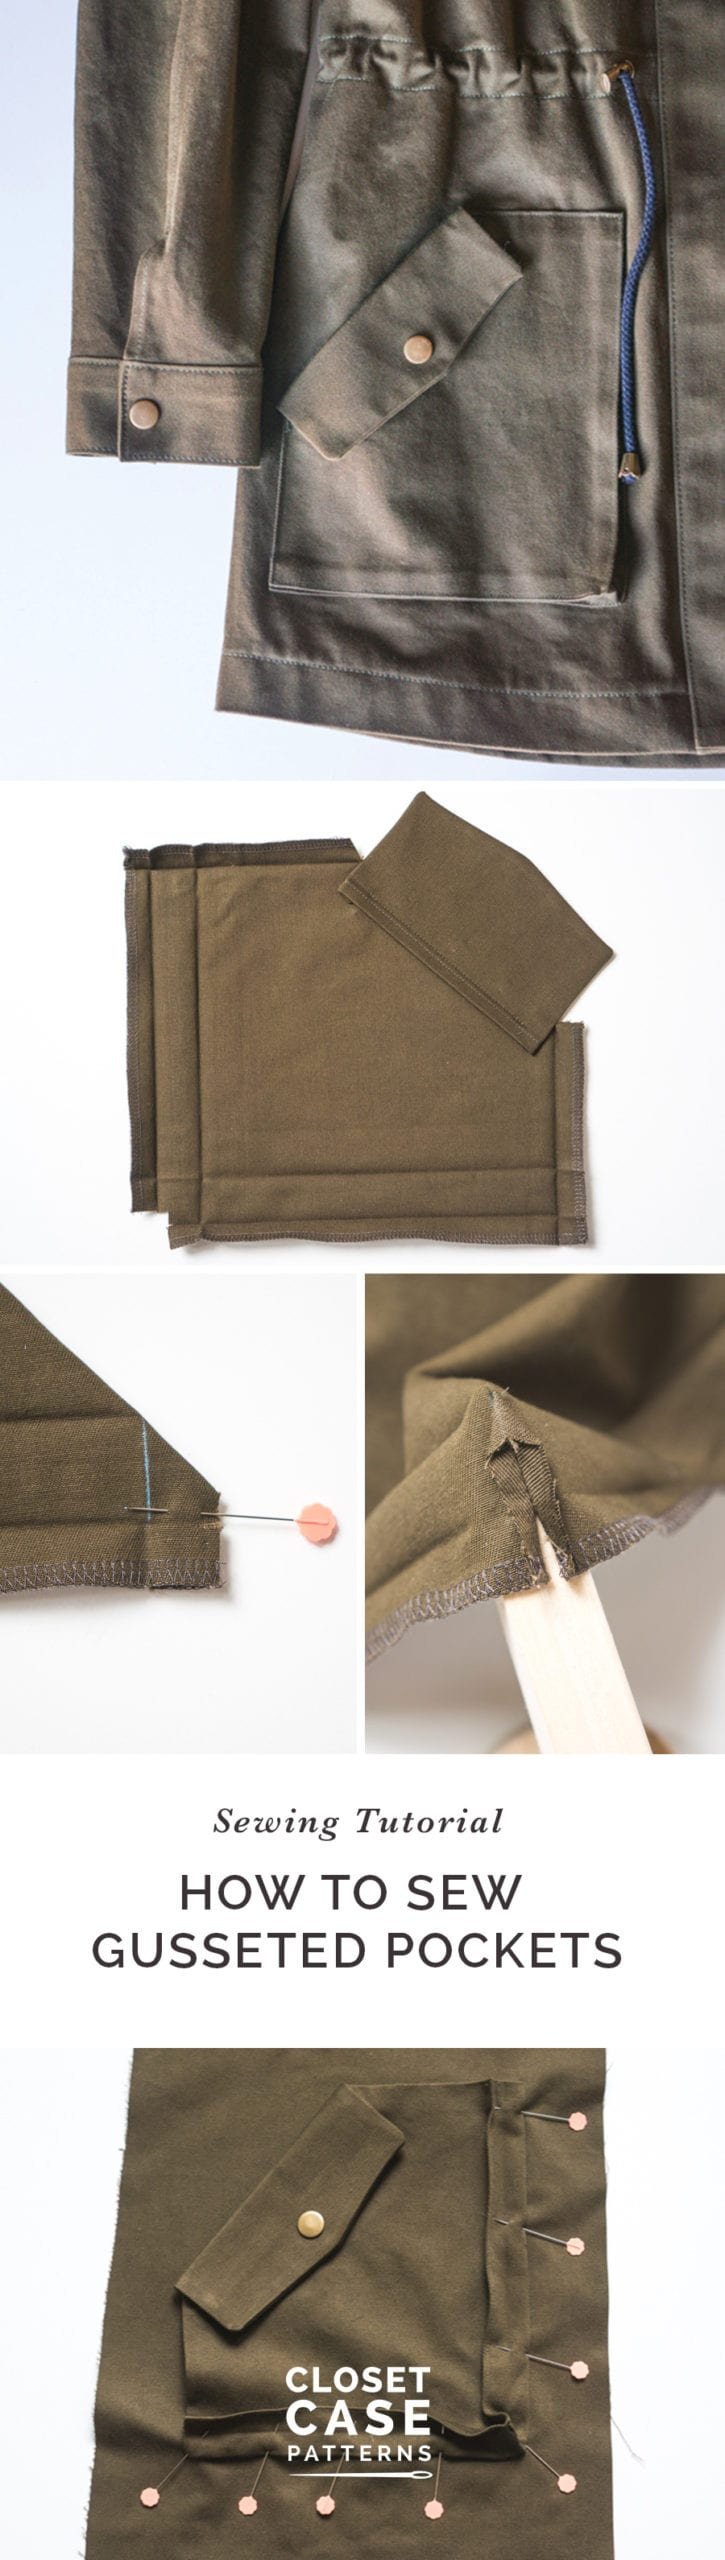 Sewing Gusseted Pockets // Kelly Anorak Sewalong